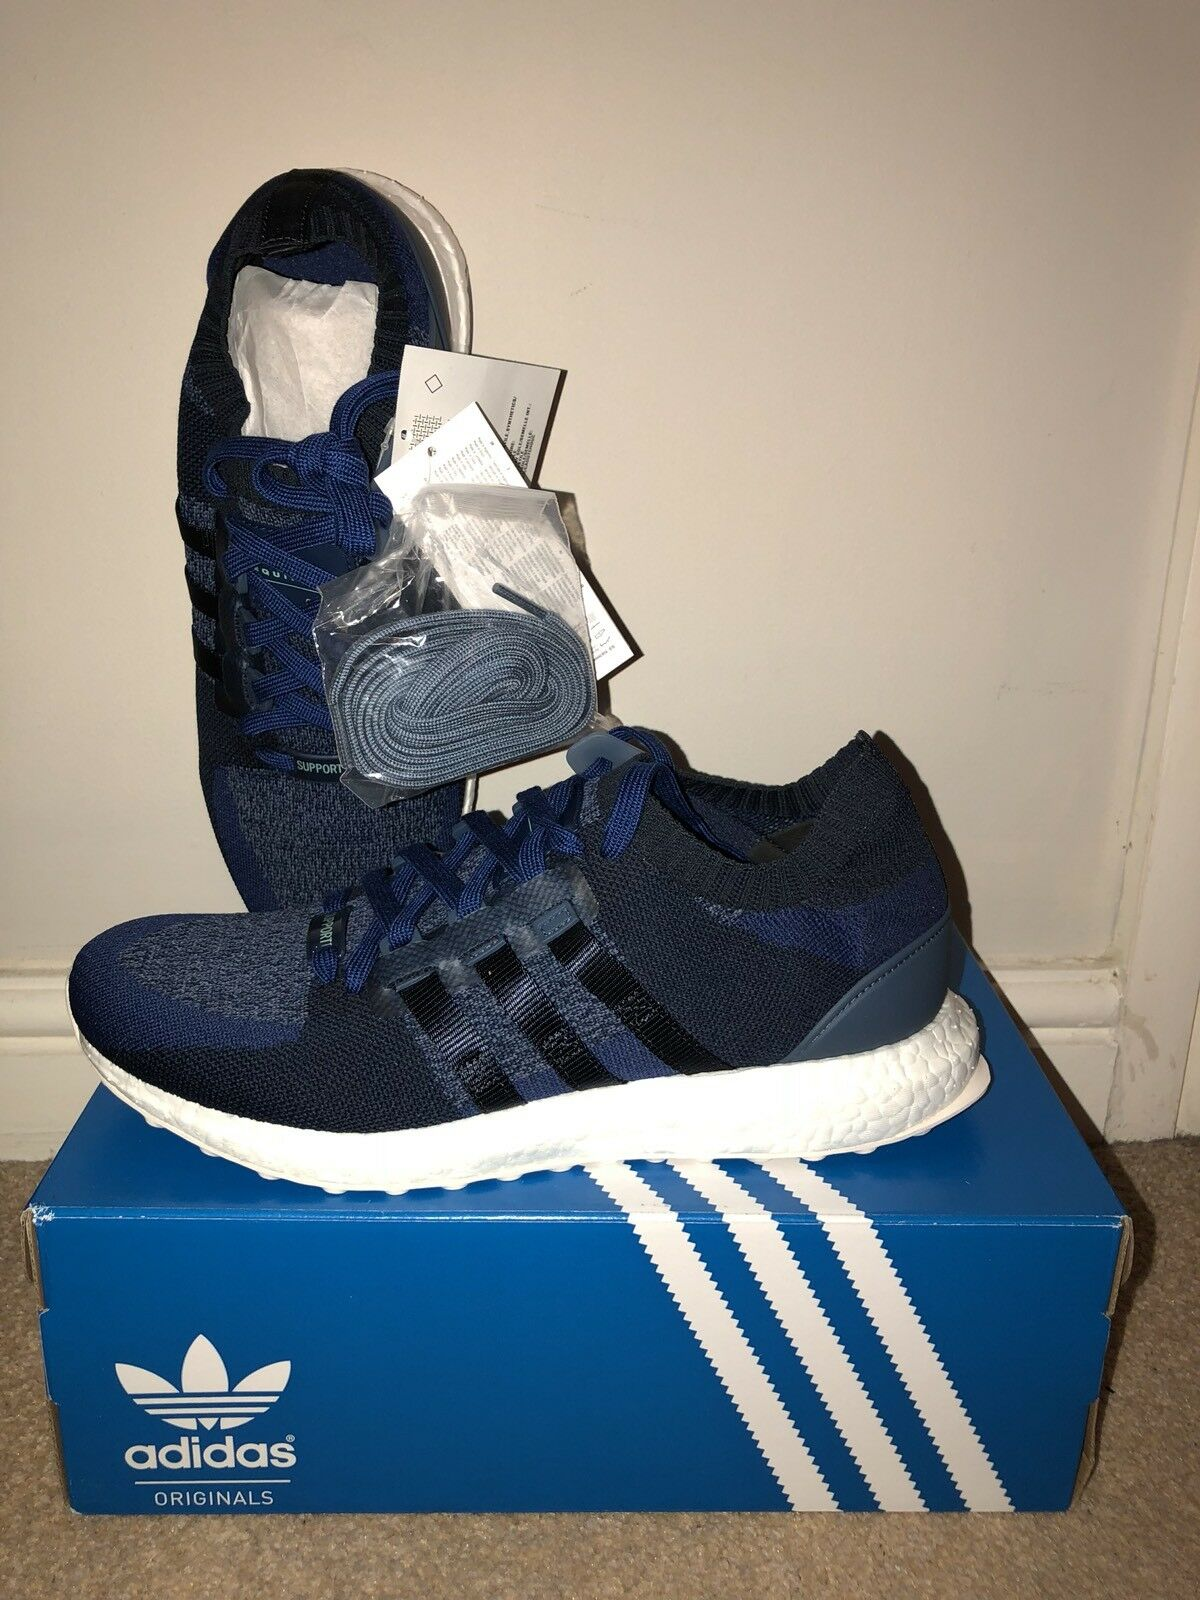 Adidas EQT Support Ultra PK x SNS Exclusive Trainers Consortium UK9 Ultra Consortium Trainers Navy 648d20